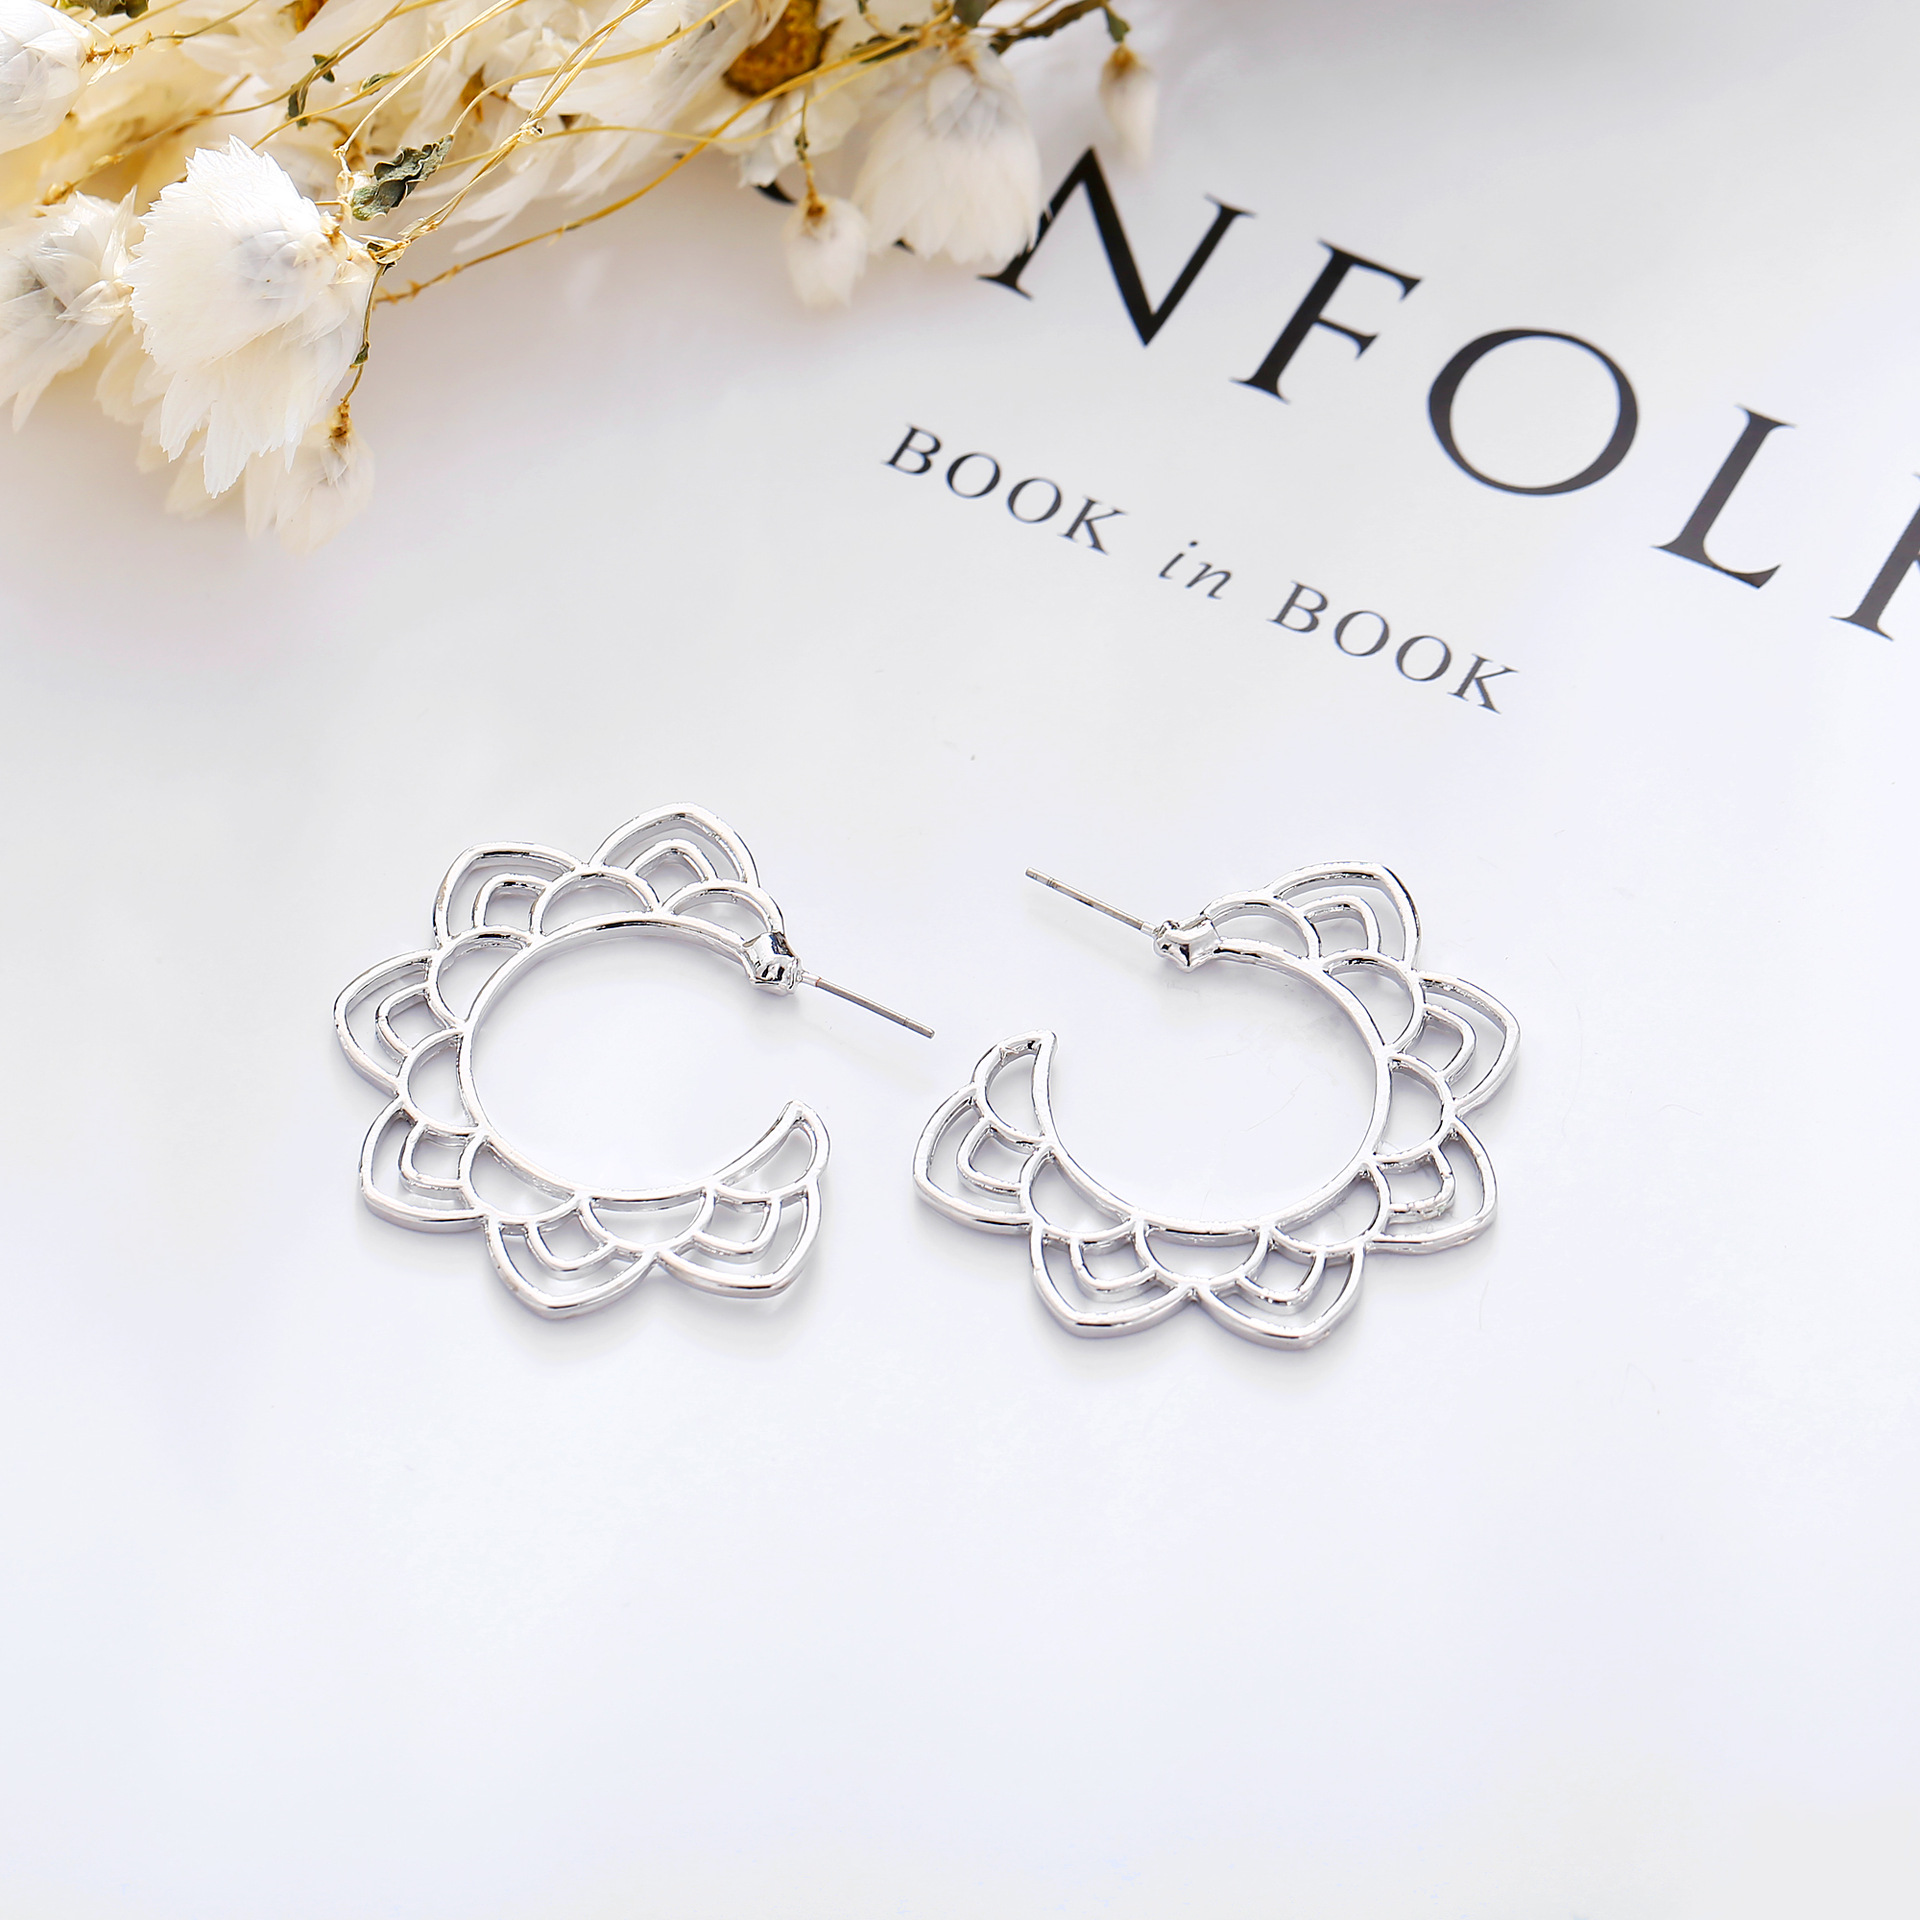 Alloy Fashion Flowers earring  (Alloy GEQ02-02)  Fashion Jewelry NHPJ0310-Alloy-GEQ02-02